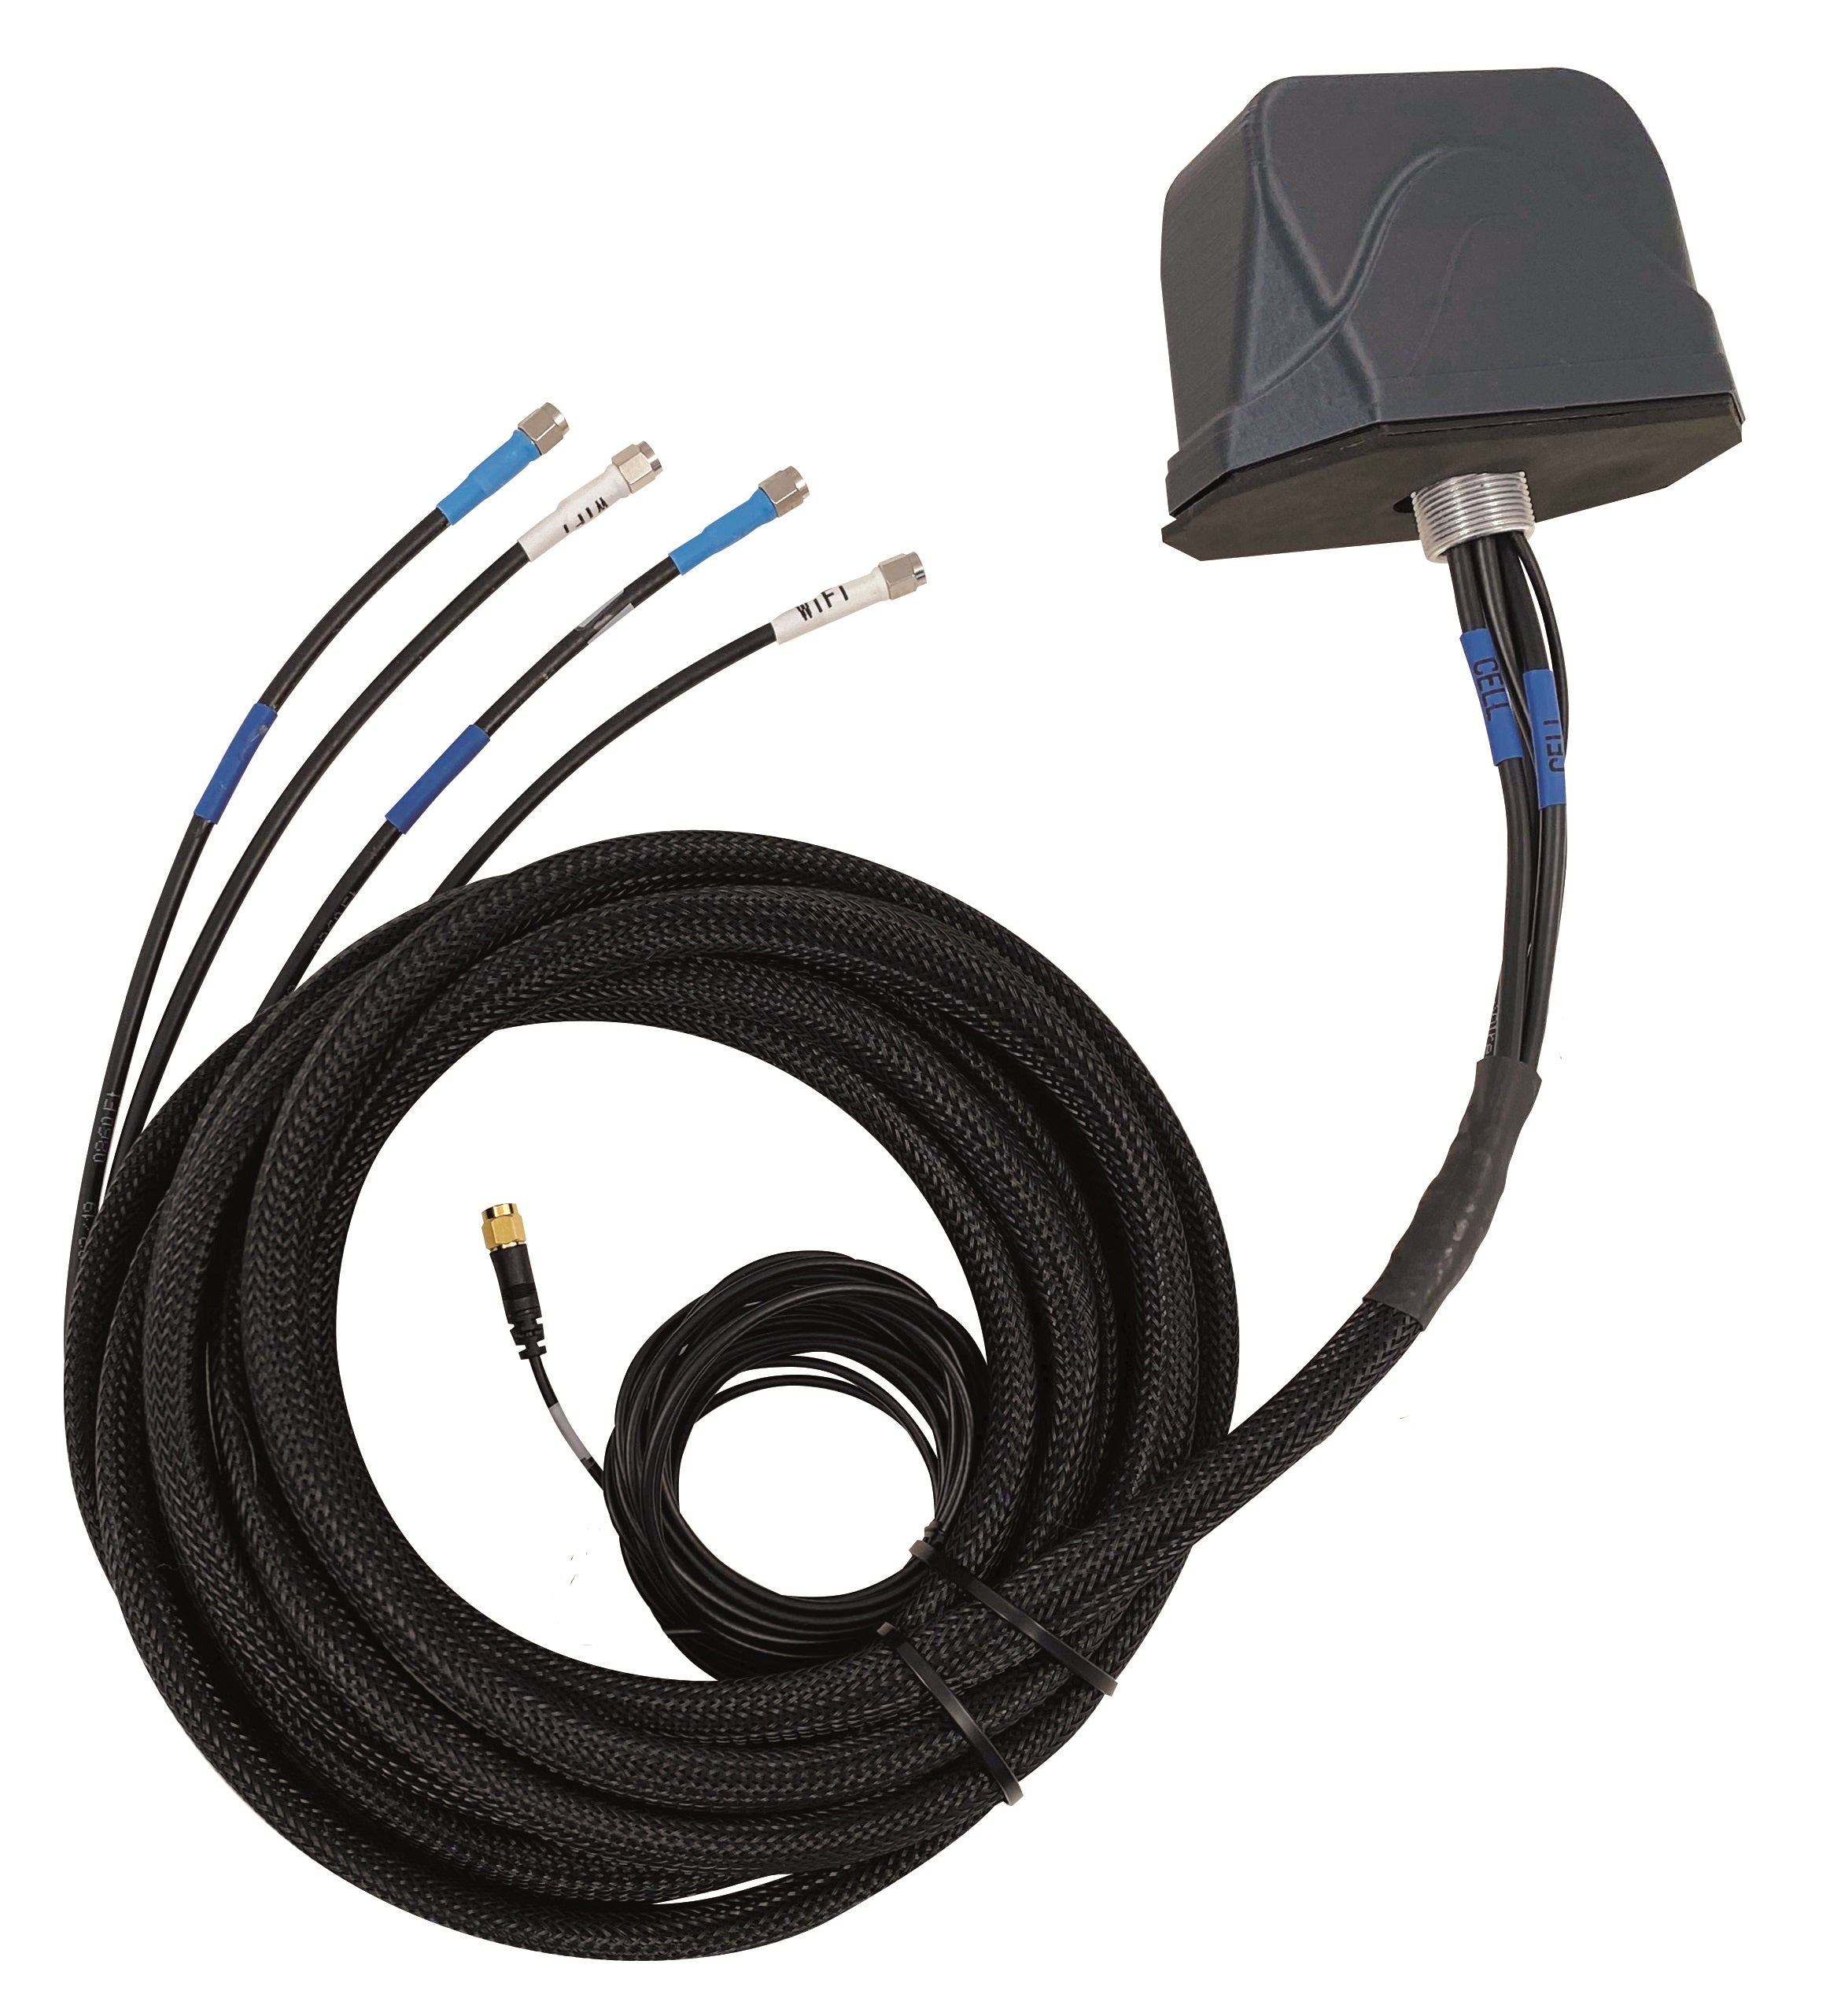 RM2D-G44WW-15-SSSSS-B: MIMO LTE, MIMO Wi-Fi, and GNSS Vehicular Antenna Direct Mount with 5x SMA-Male Connectors